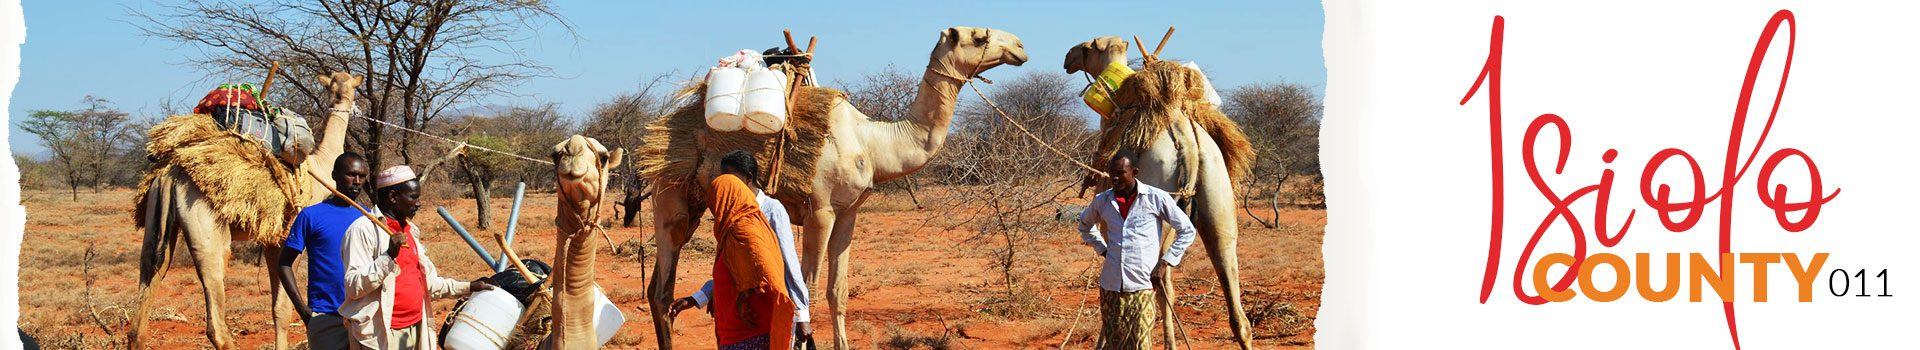 Isiolo-Banner